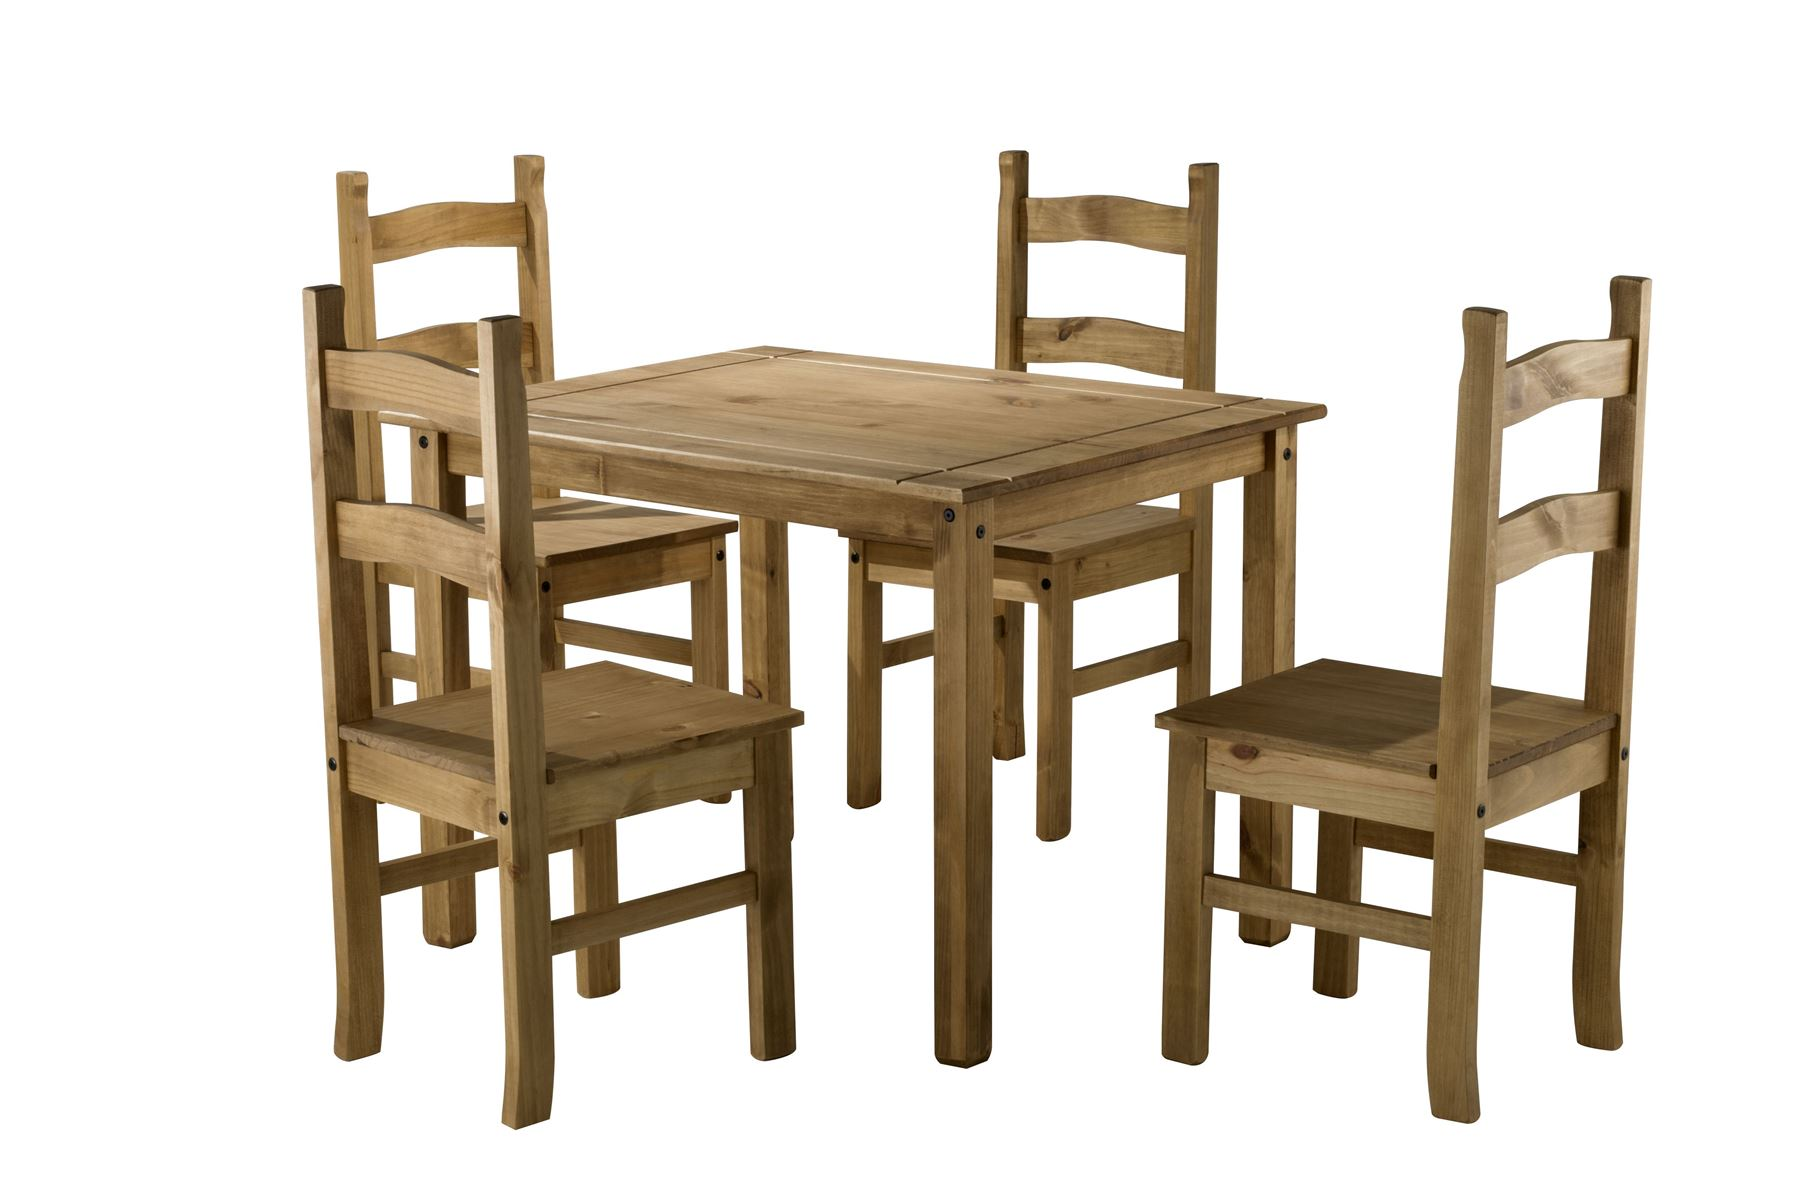 Corona Small Mexican Pine Dining Table 4 Chairs Solid Wood EBay